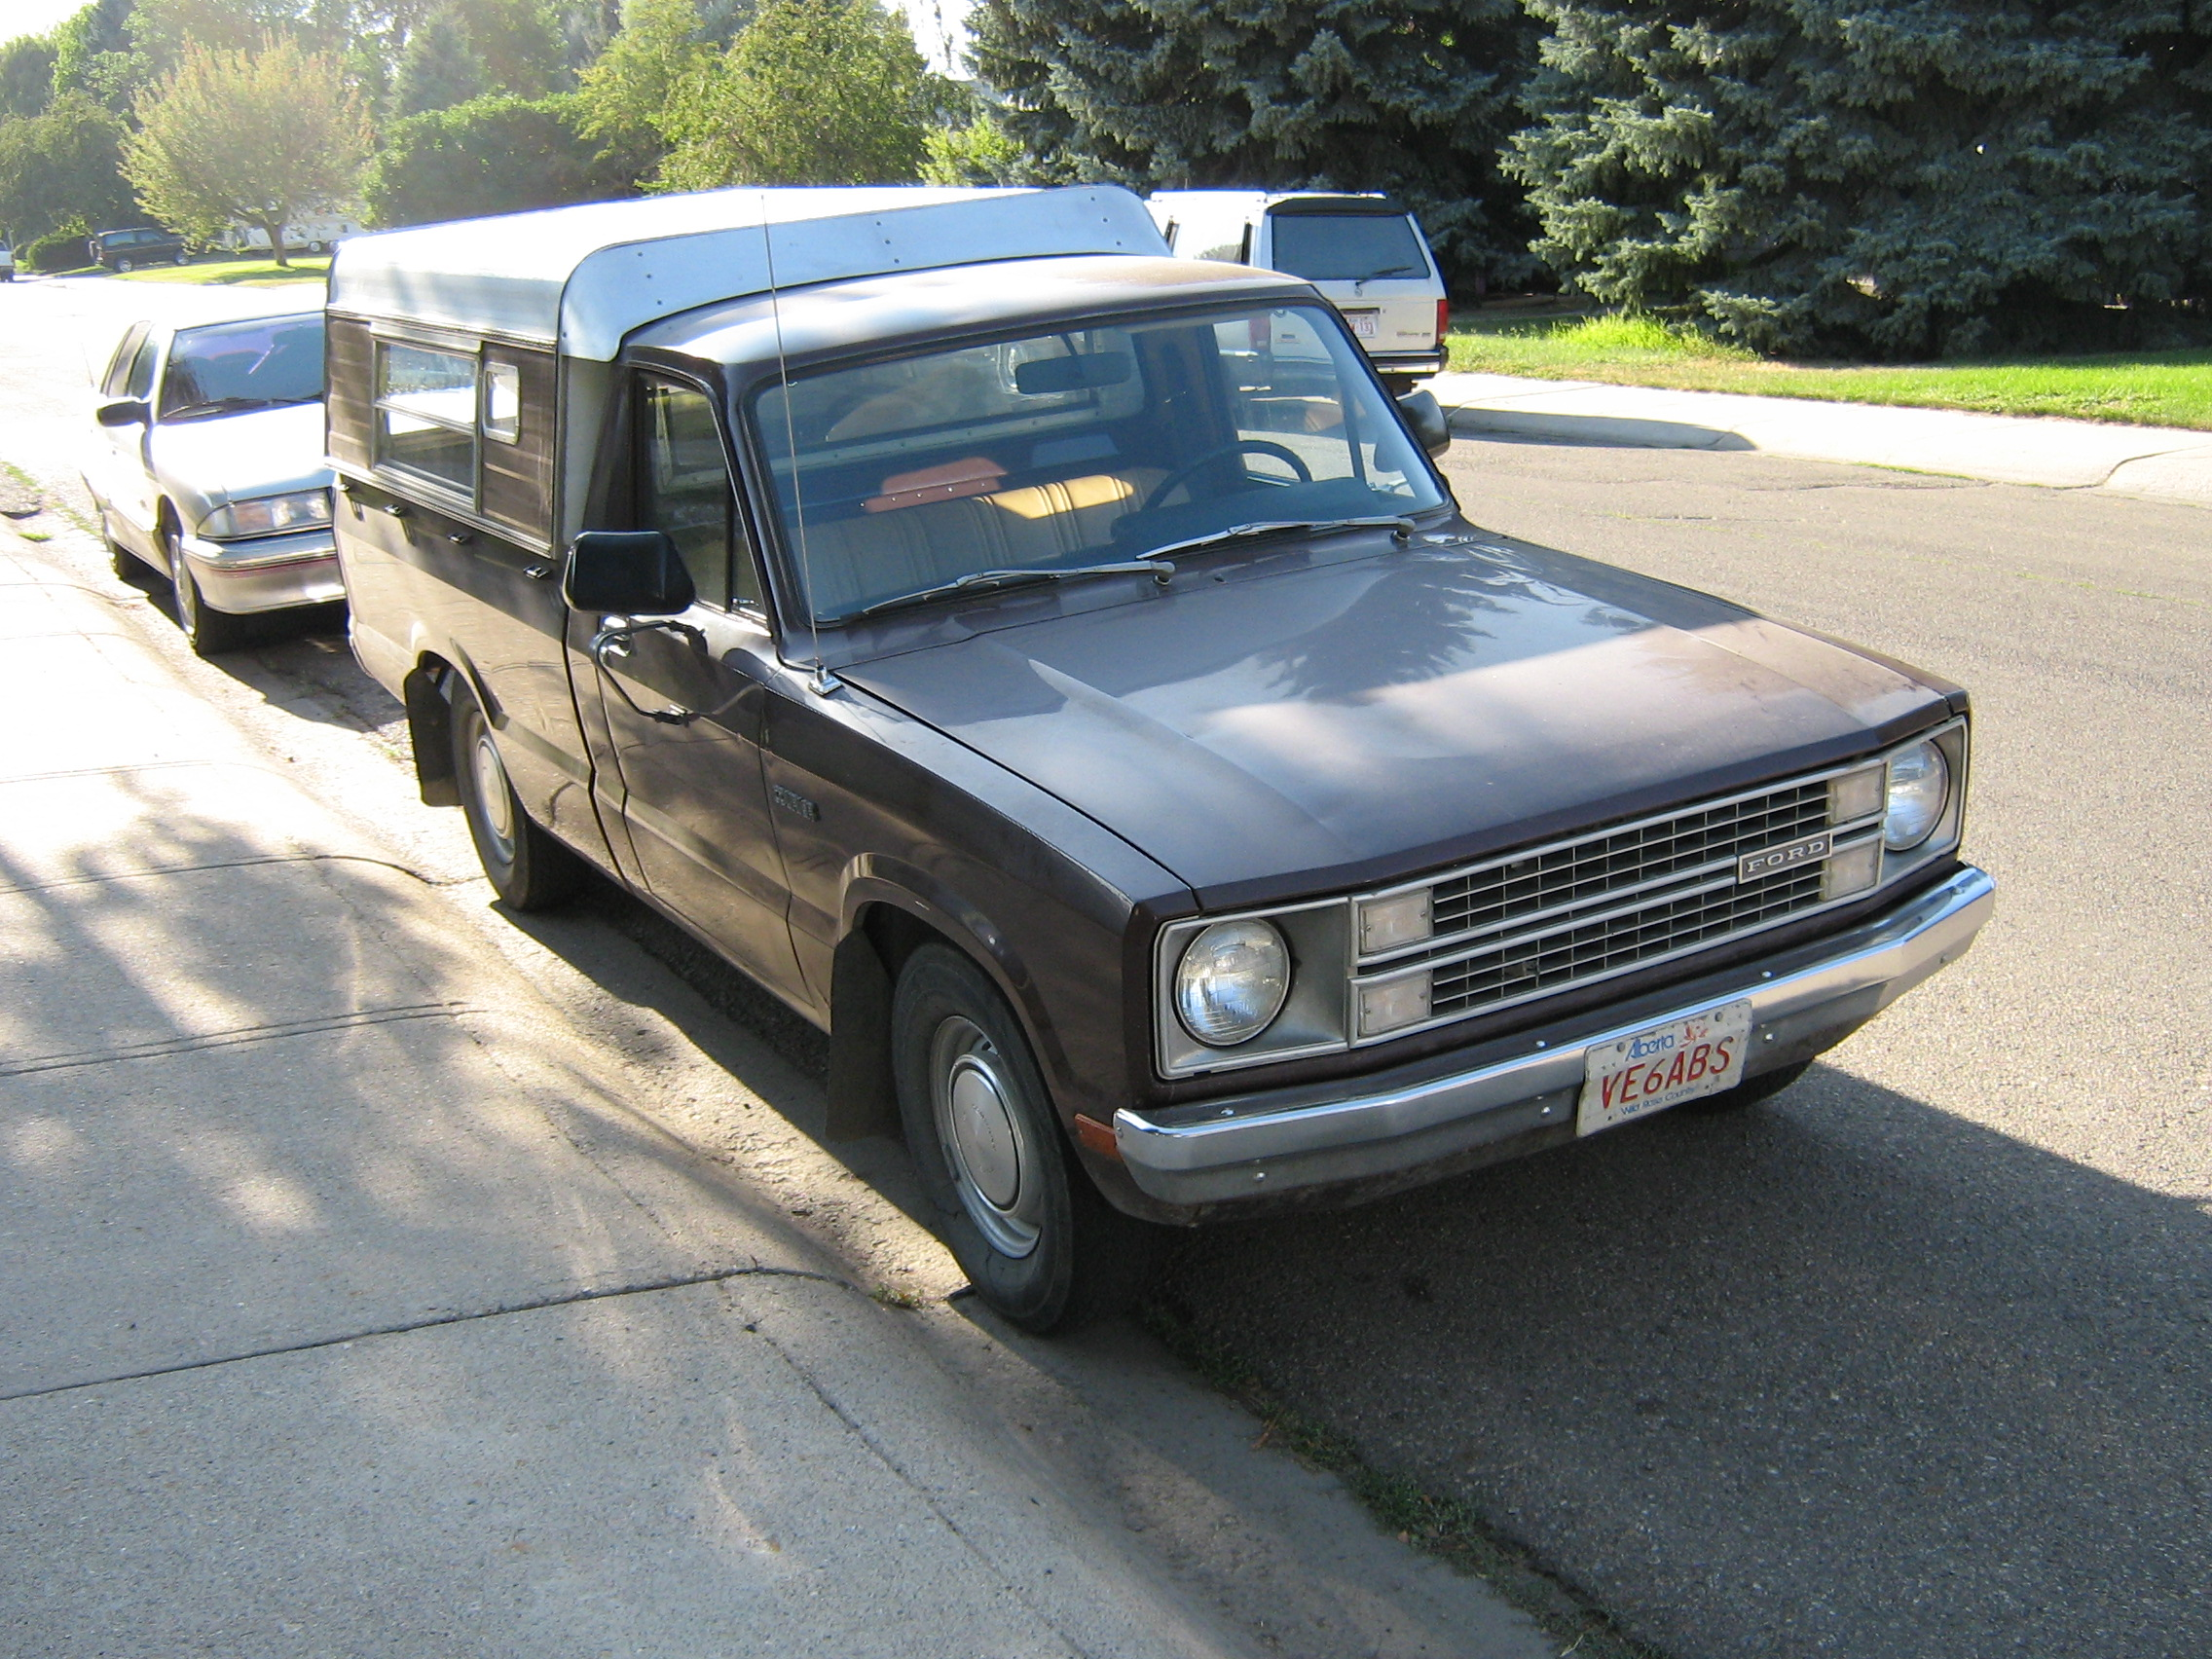 Ford courier photo - 3